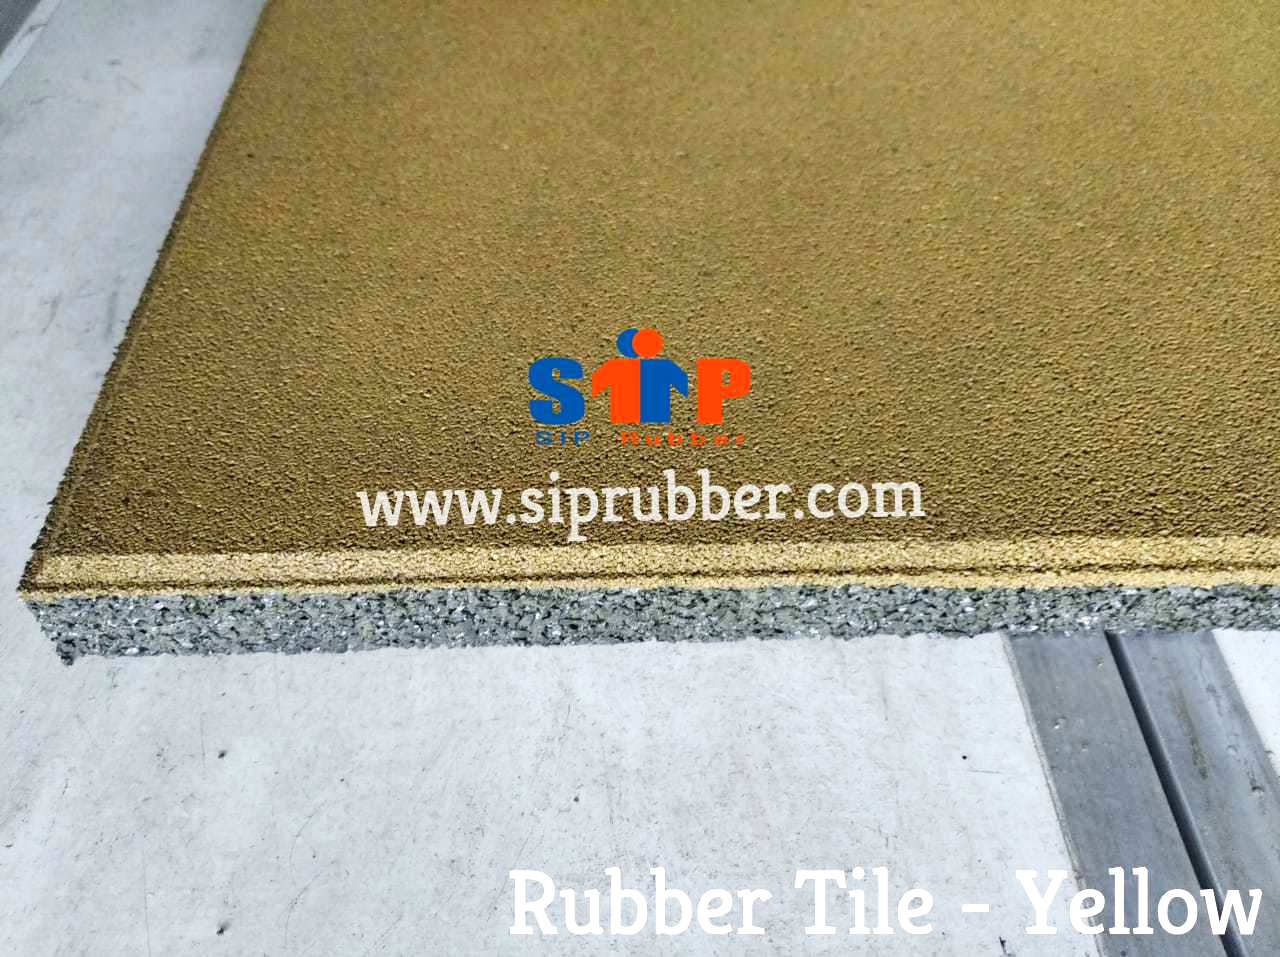 Rubber Tile - Yellow 2